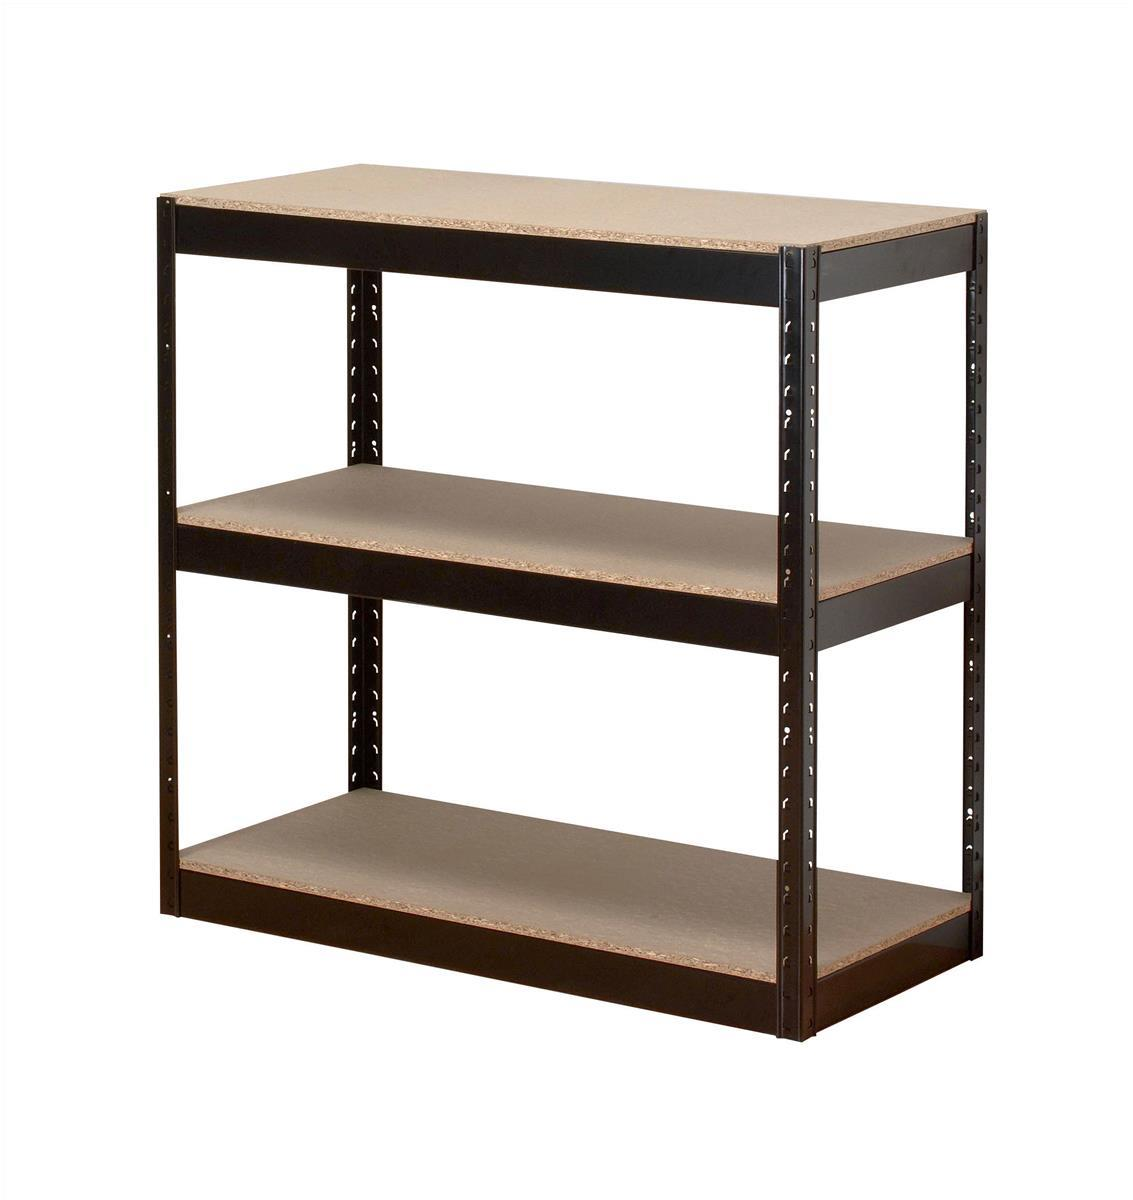 Image for Influx Storage Shelving Unit Heavy-duty Boltless 3 Shelves Capacity 3x 150kg W950xD450xH940mm Black